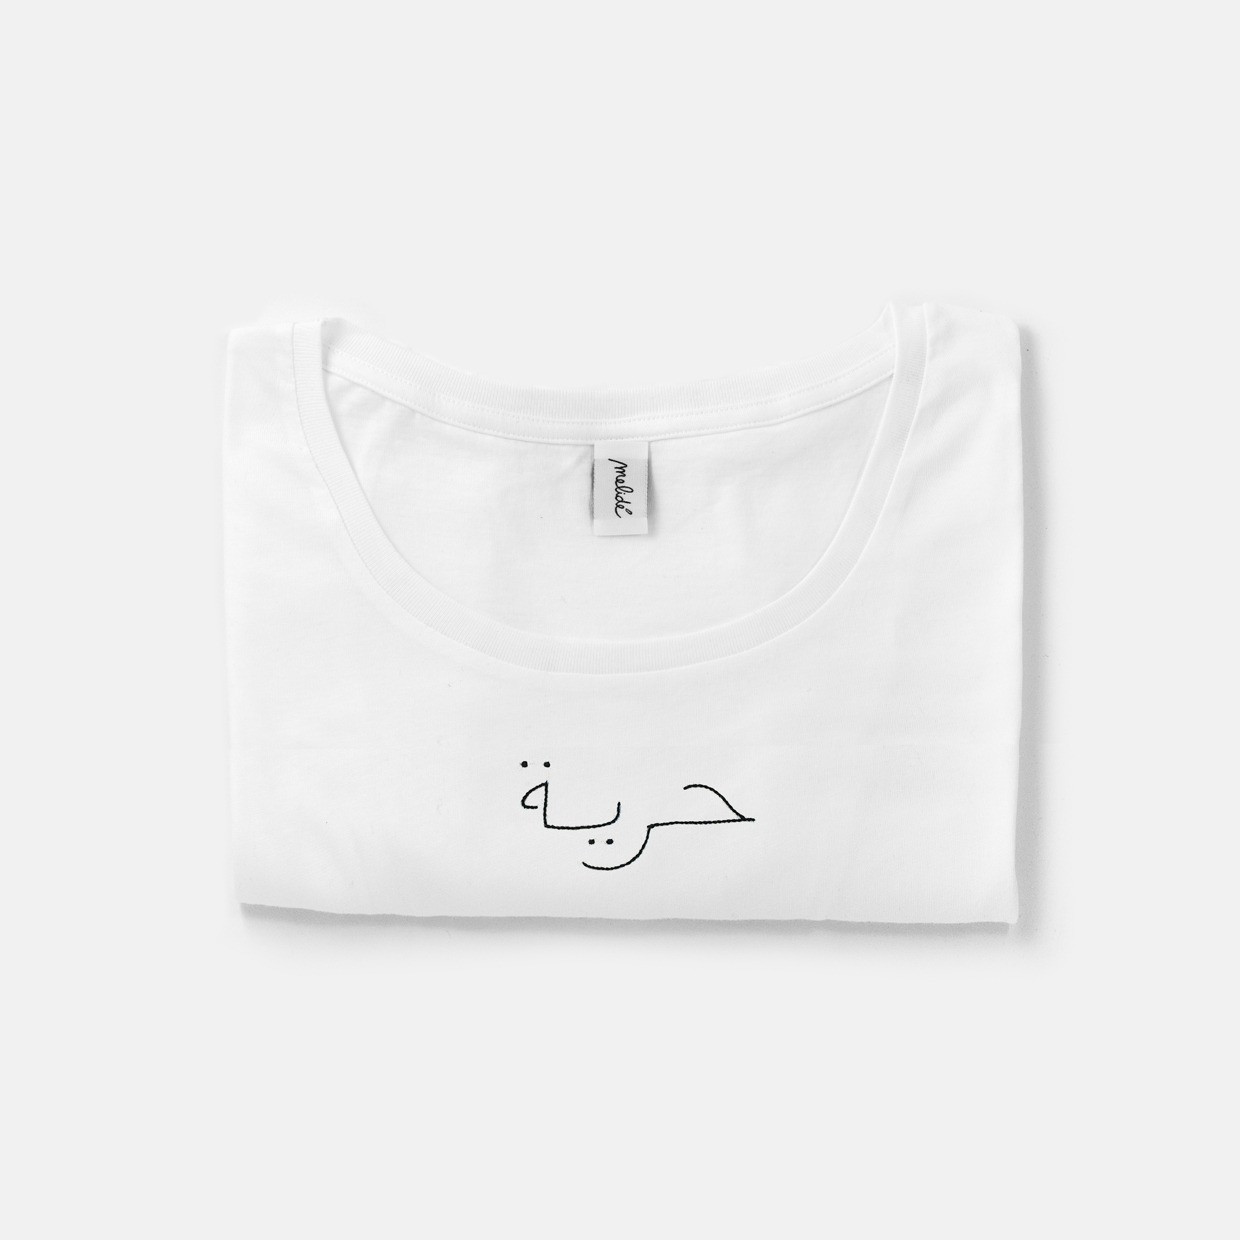 The Wide Neck LIBERTÀ Tee